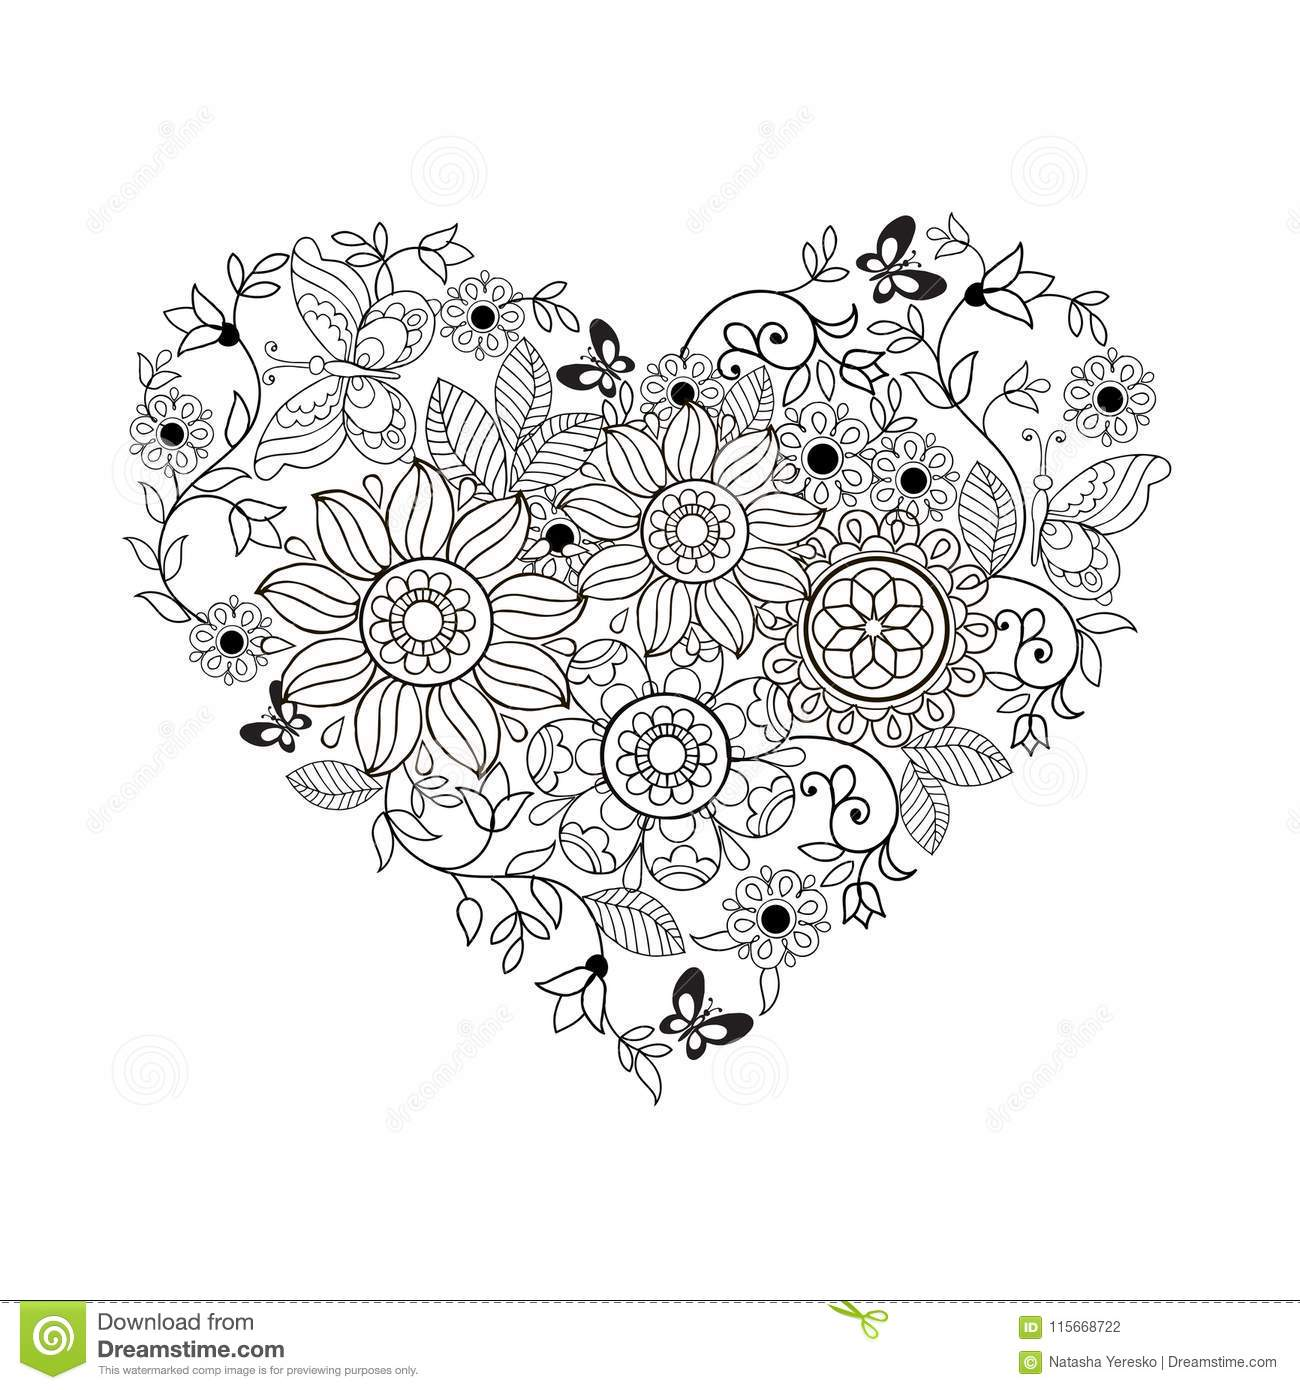 Heart Of Flowers And Butterflies For Coloring Books For Adults And ...